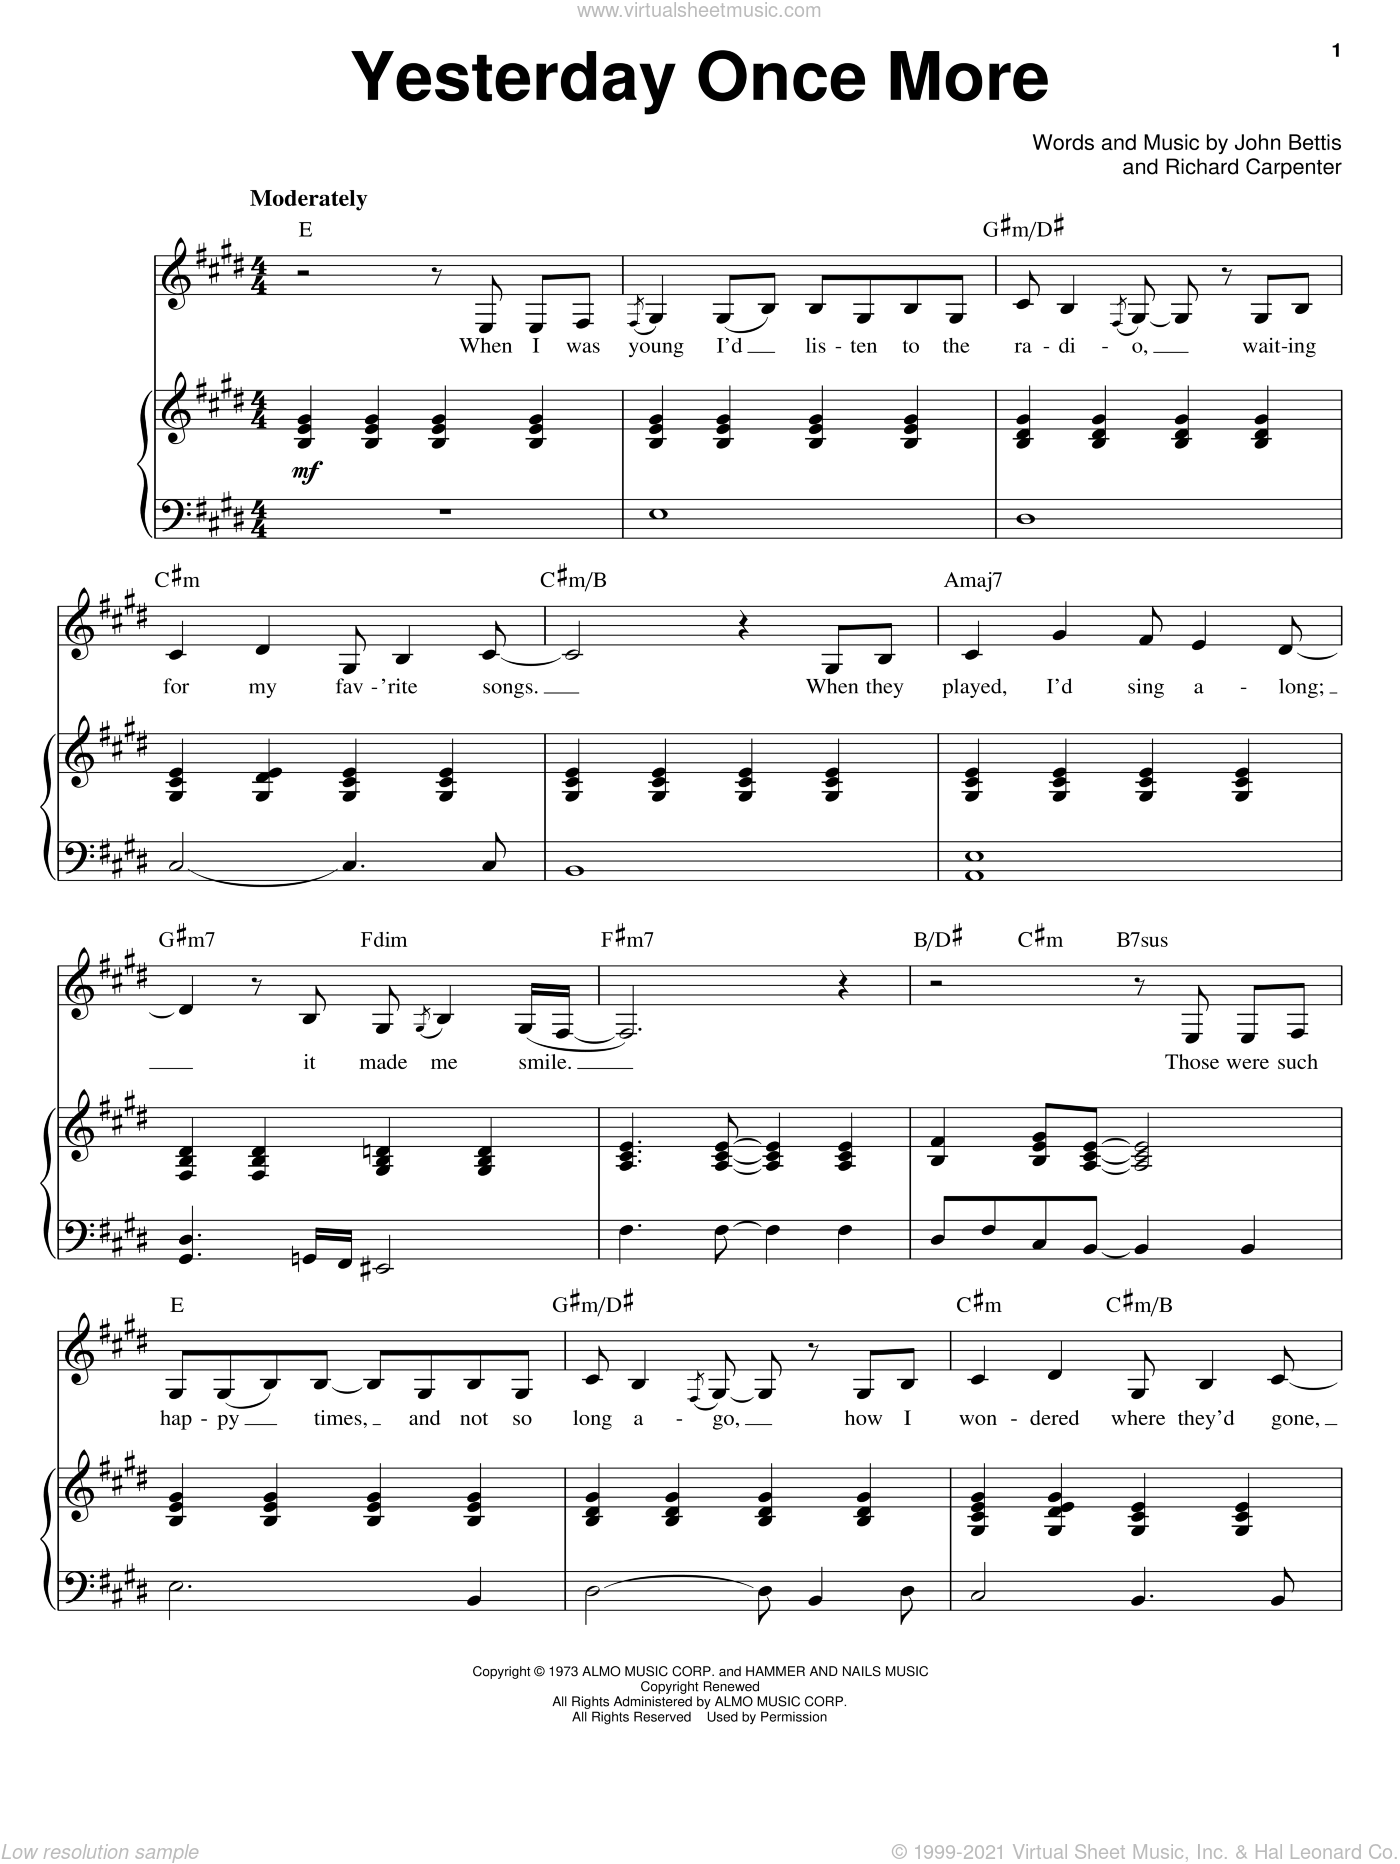 Yesterday Once More sheet music for voice and piano by Carpenters, John Bettis and Richard Carpenter, intermediate skill level